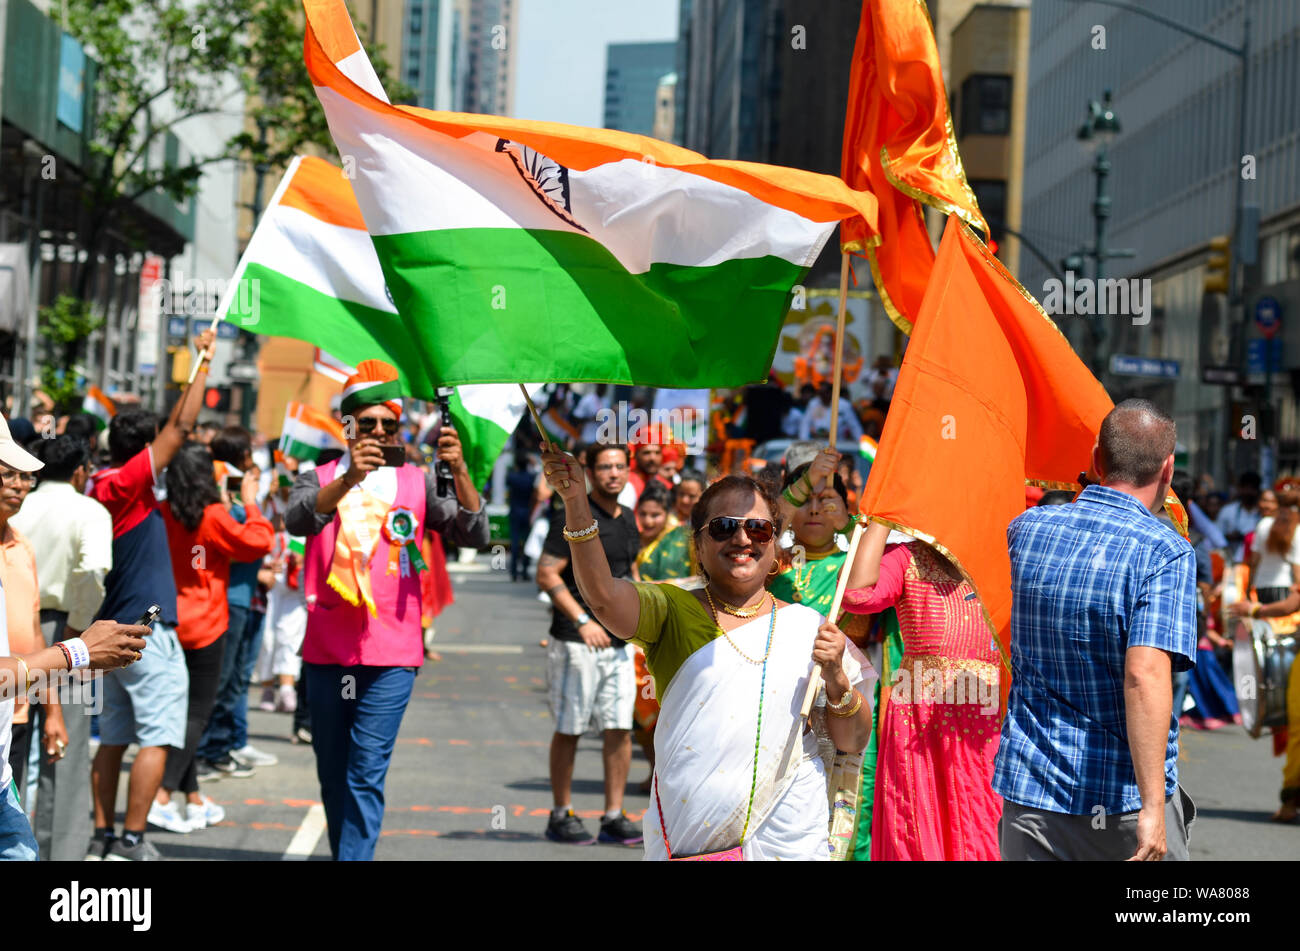 New York, New York, USA  18th Aug, 2019  Thousands of